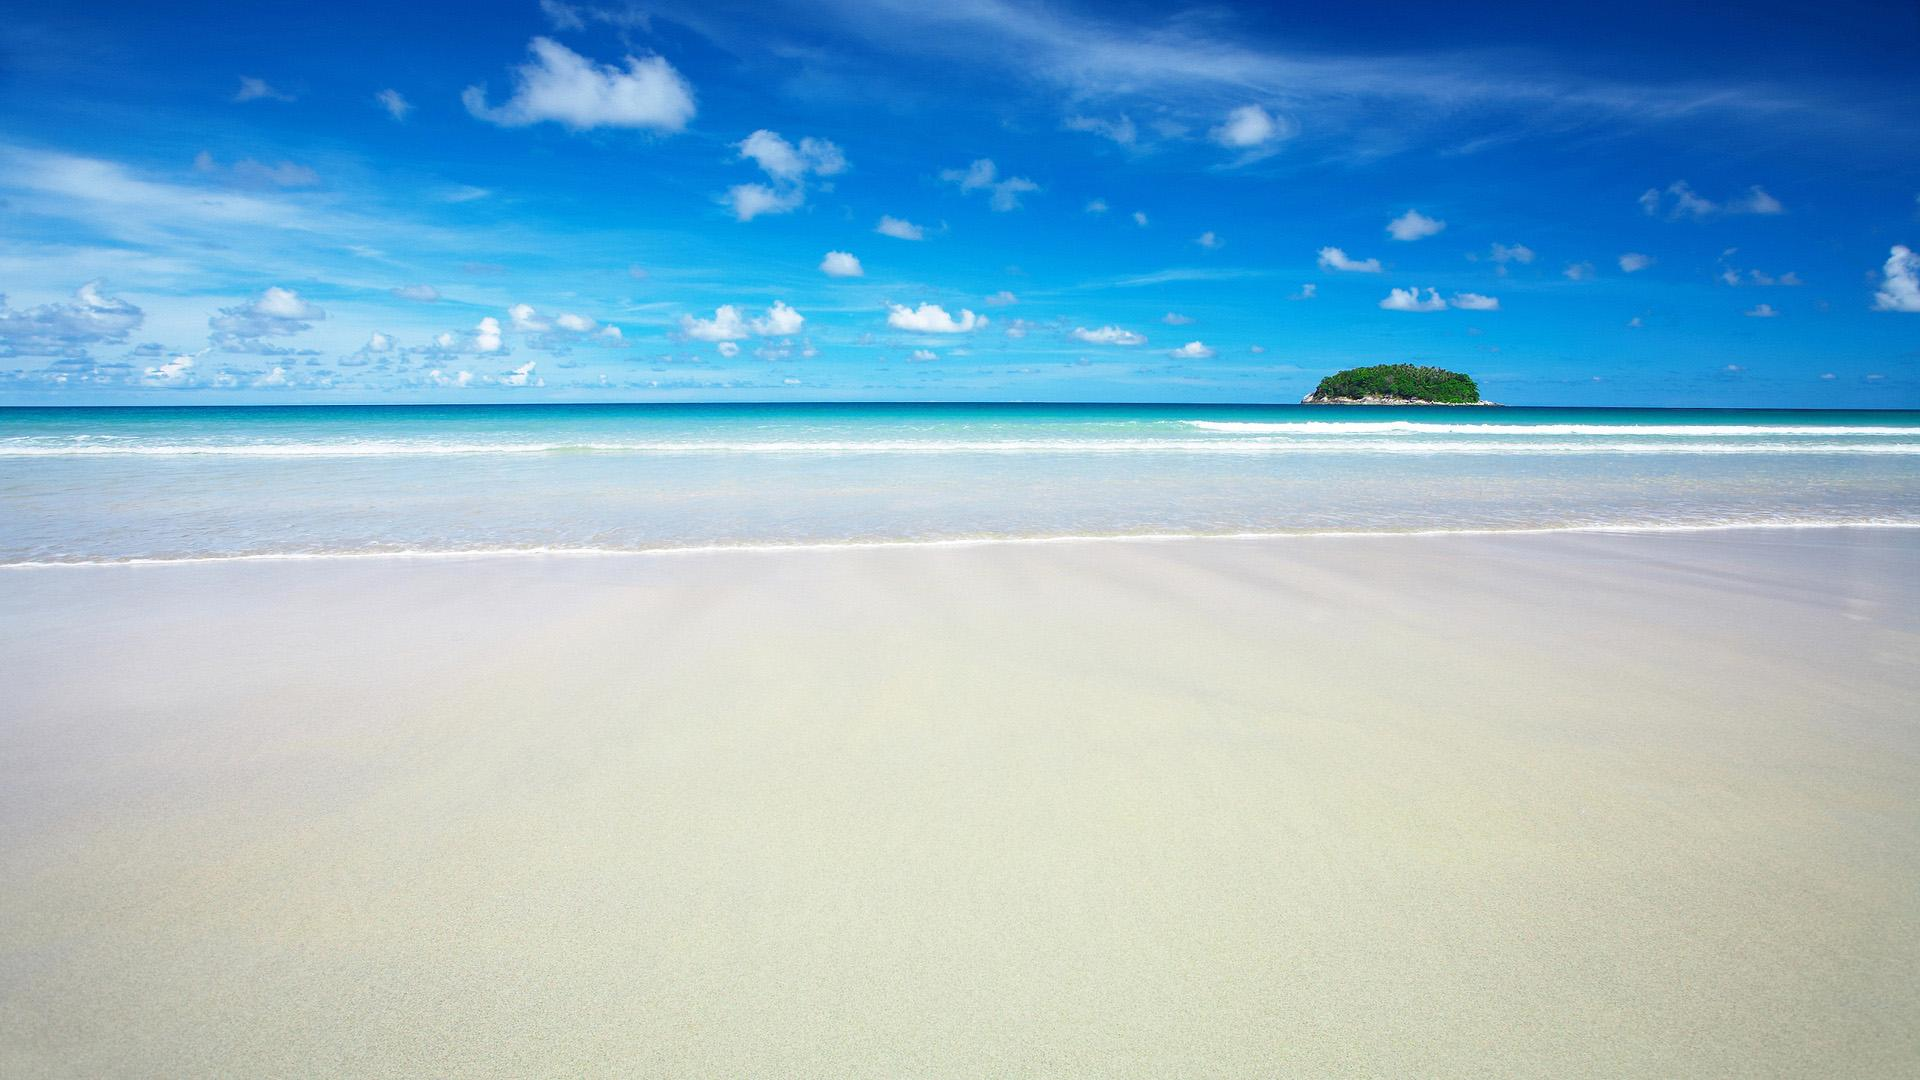 Download 42 High Res Caribbean Wallpaper Backgrounds Free 15 Beach